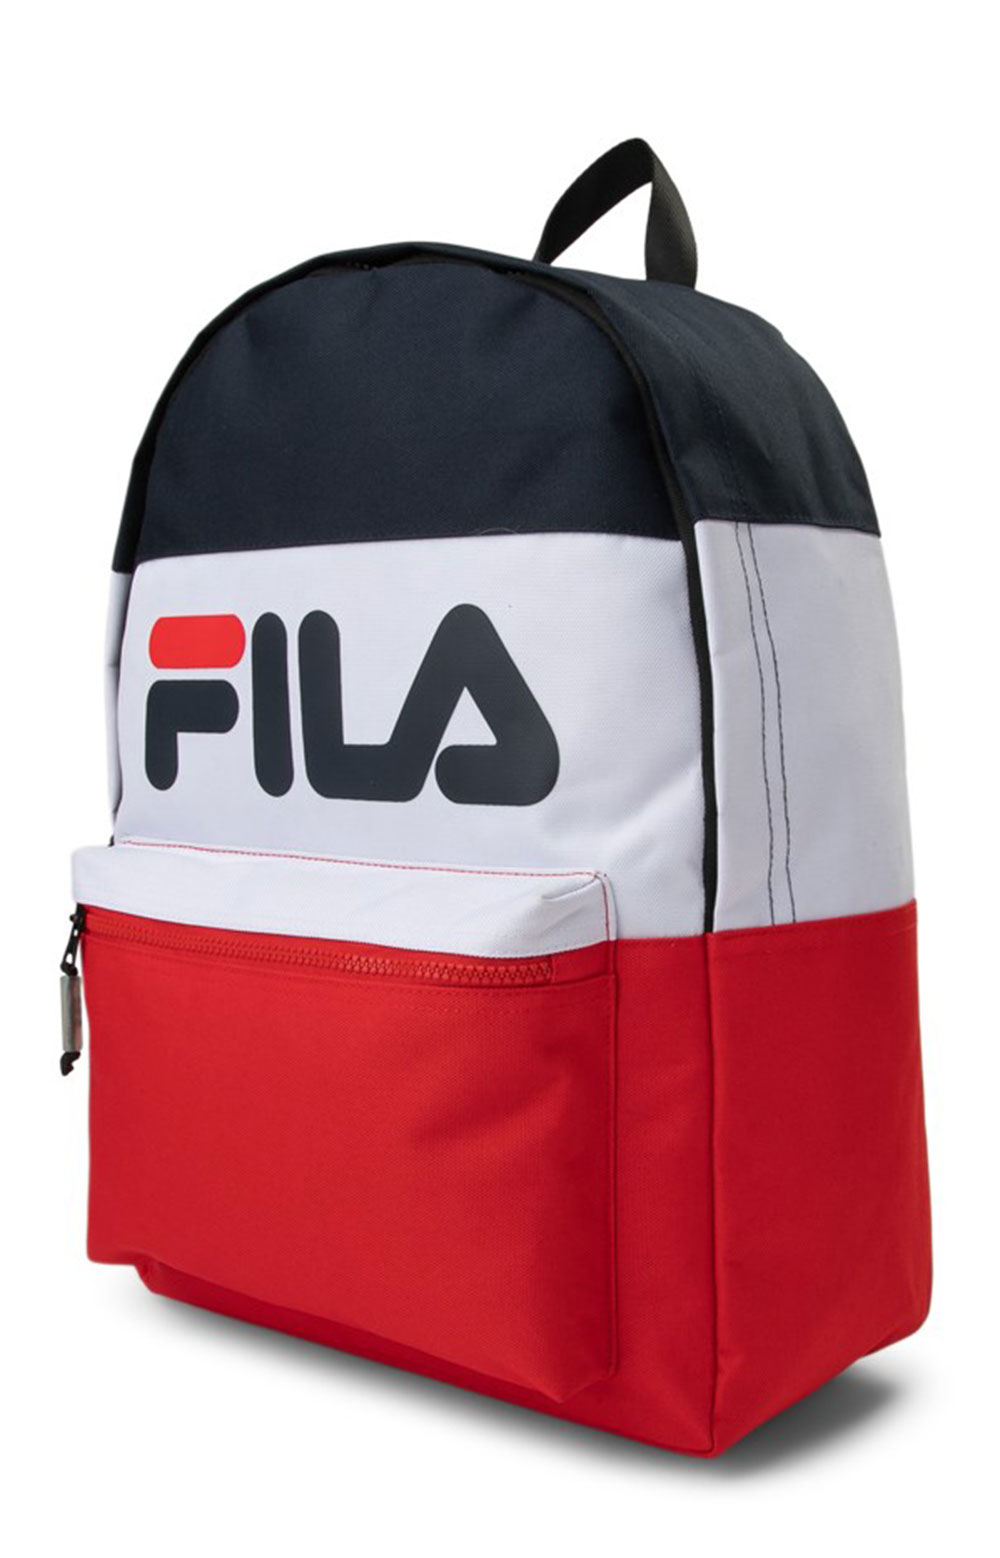 Verty Backpack - Peacoat/White/Red 3